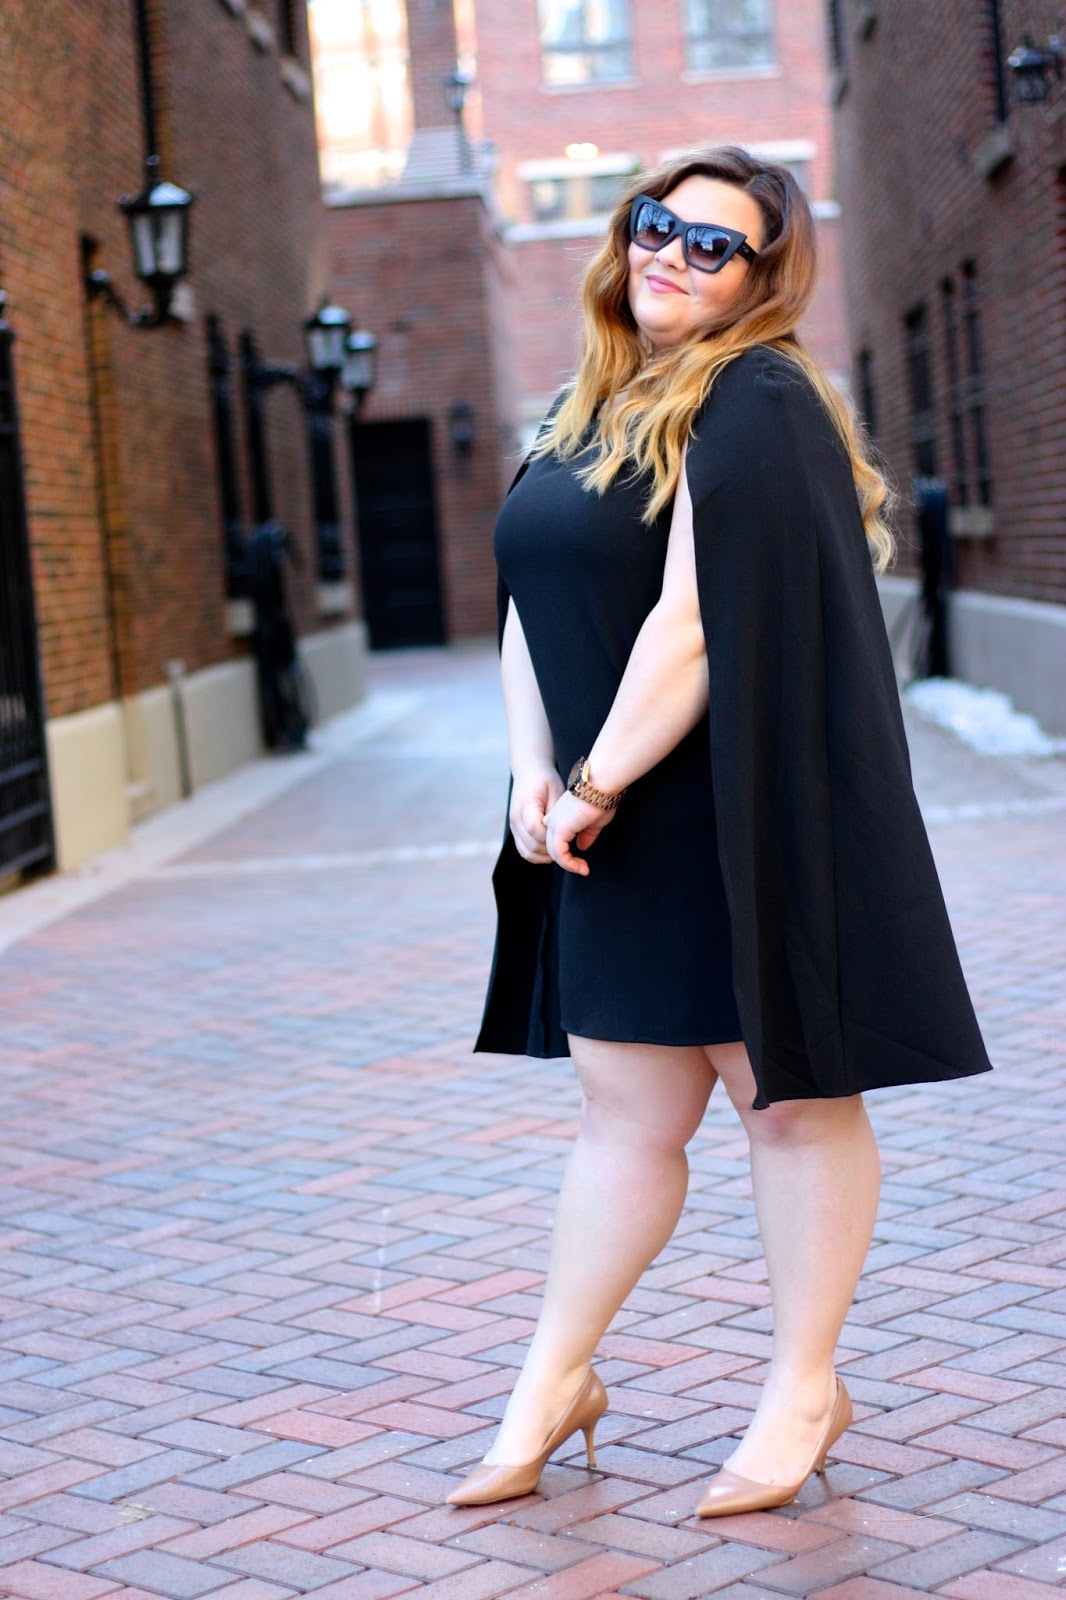 little black dress plus size, LBD, OOTD, natalie craig, cape dress, chicago, natalie in the city, plus size fashion, fashion blogger, forever 21 plus, capes, 2016 fashion trends, why men dont like certain trends, curves and confidence, quay sunglasses blogger, bold sunglasses for my face shape